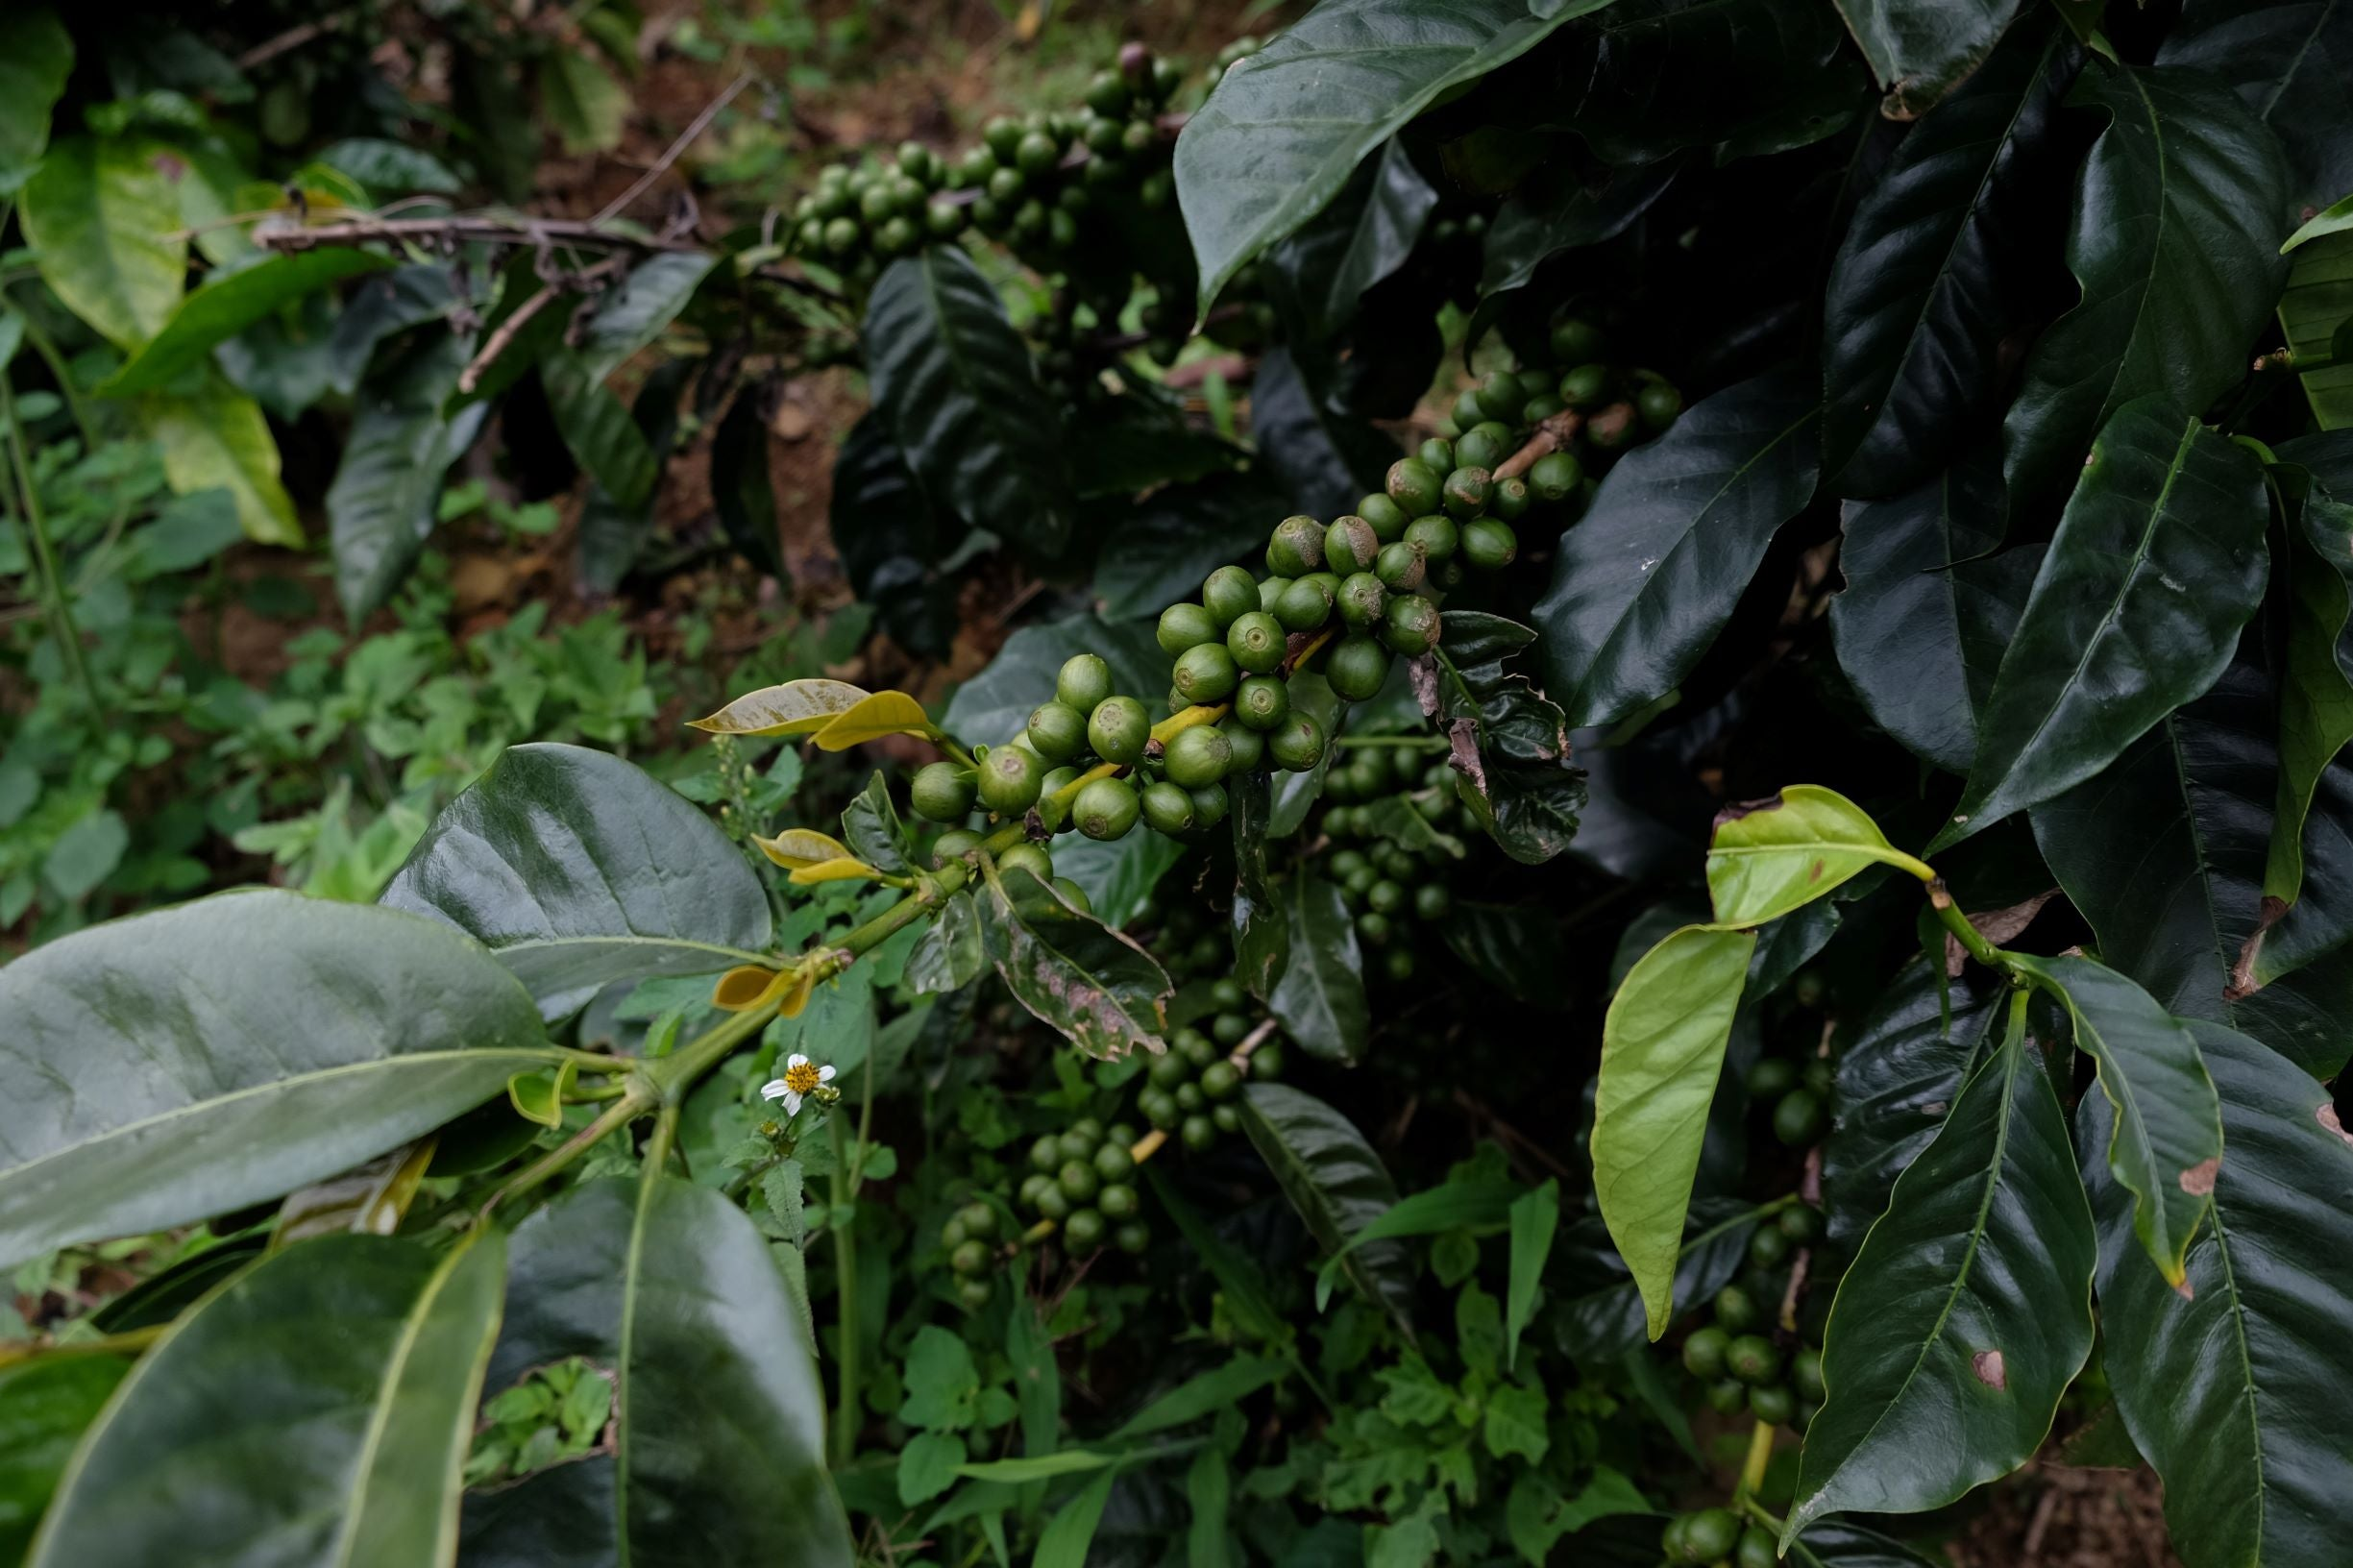 Green coffee cherries ripening on the tree